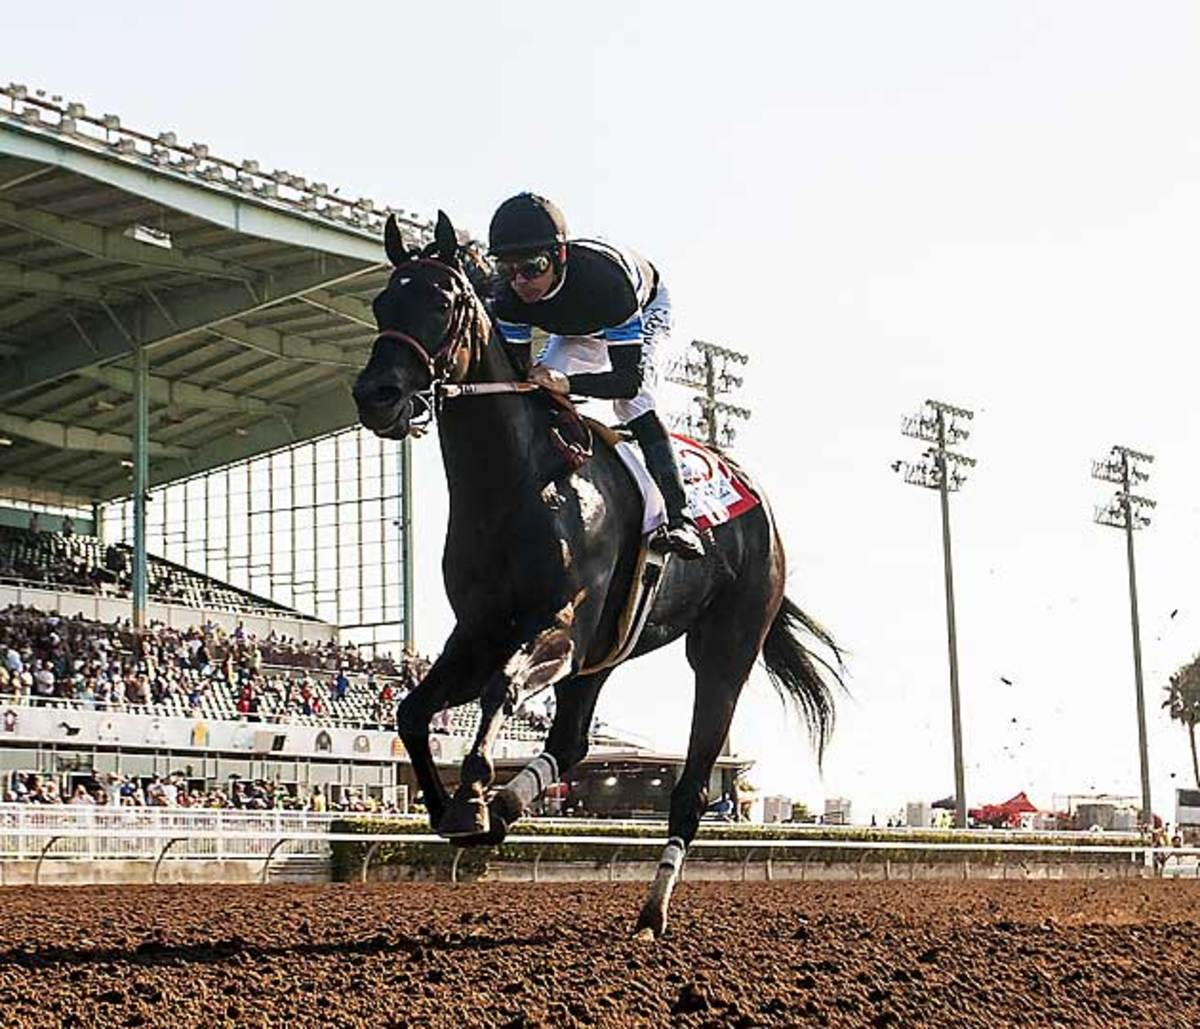 In July, Smith rode Breeders' Cup Classic contender Shared Belief to an easy victory in the Los Alamitos Derby.